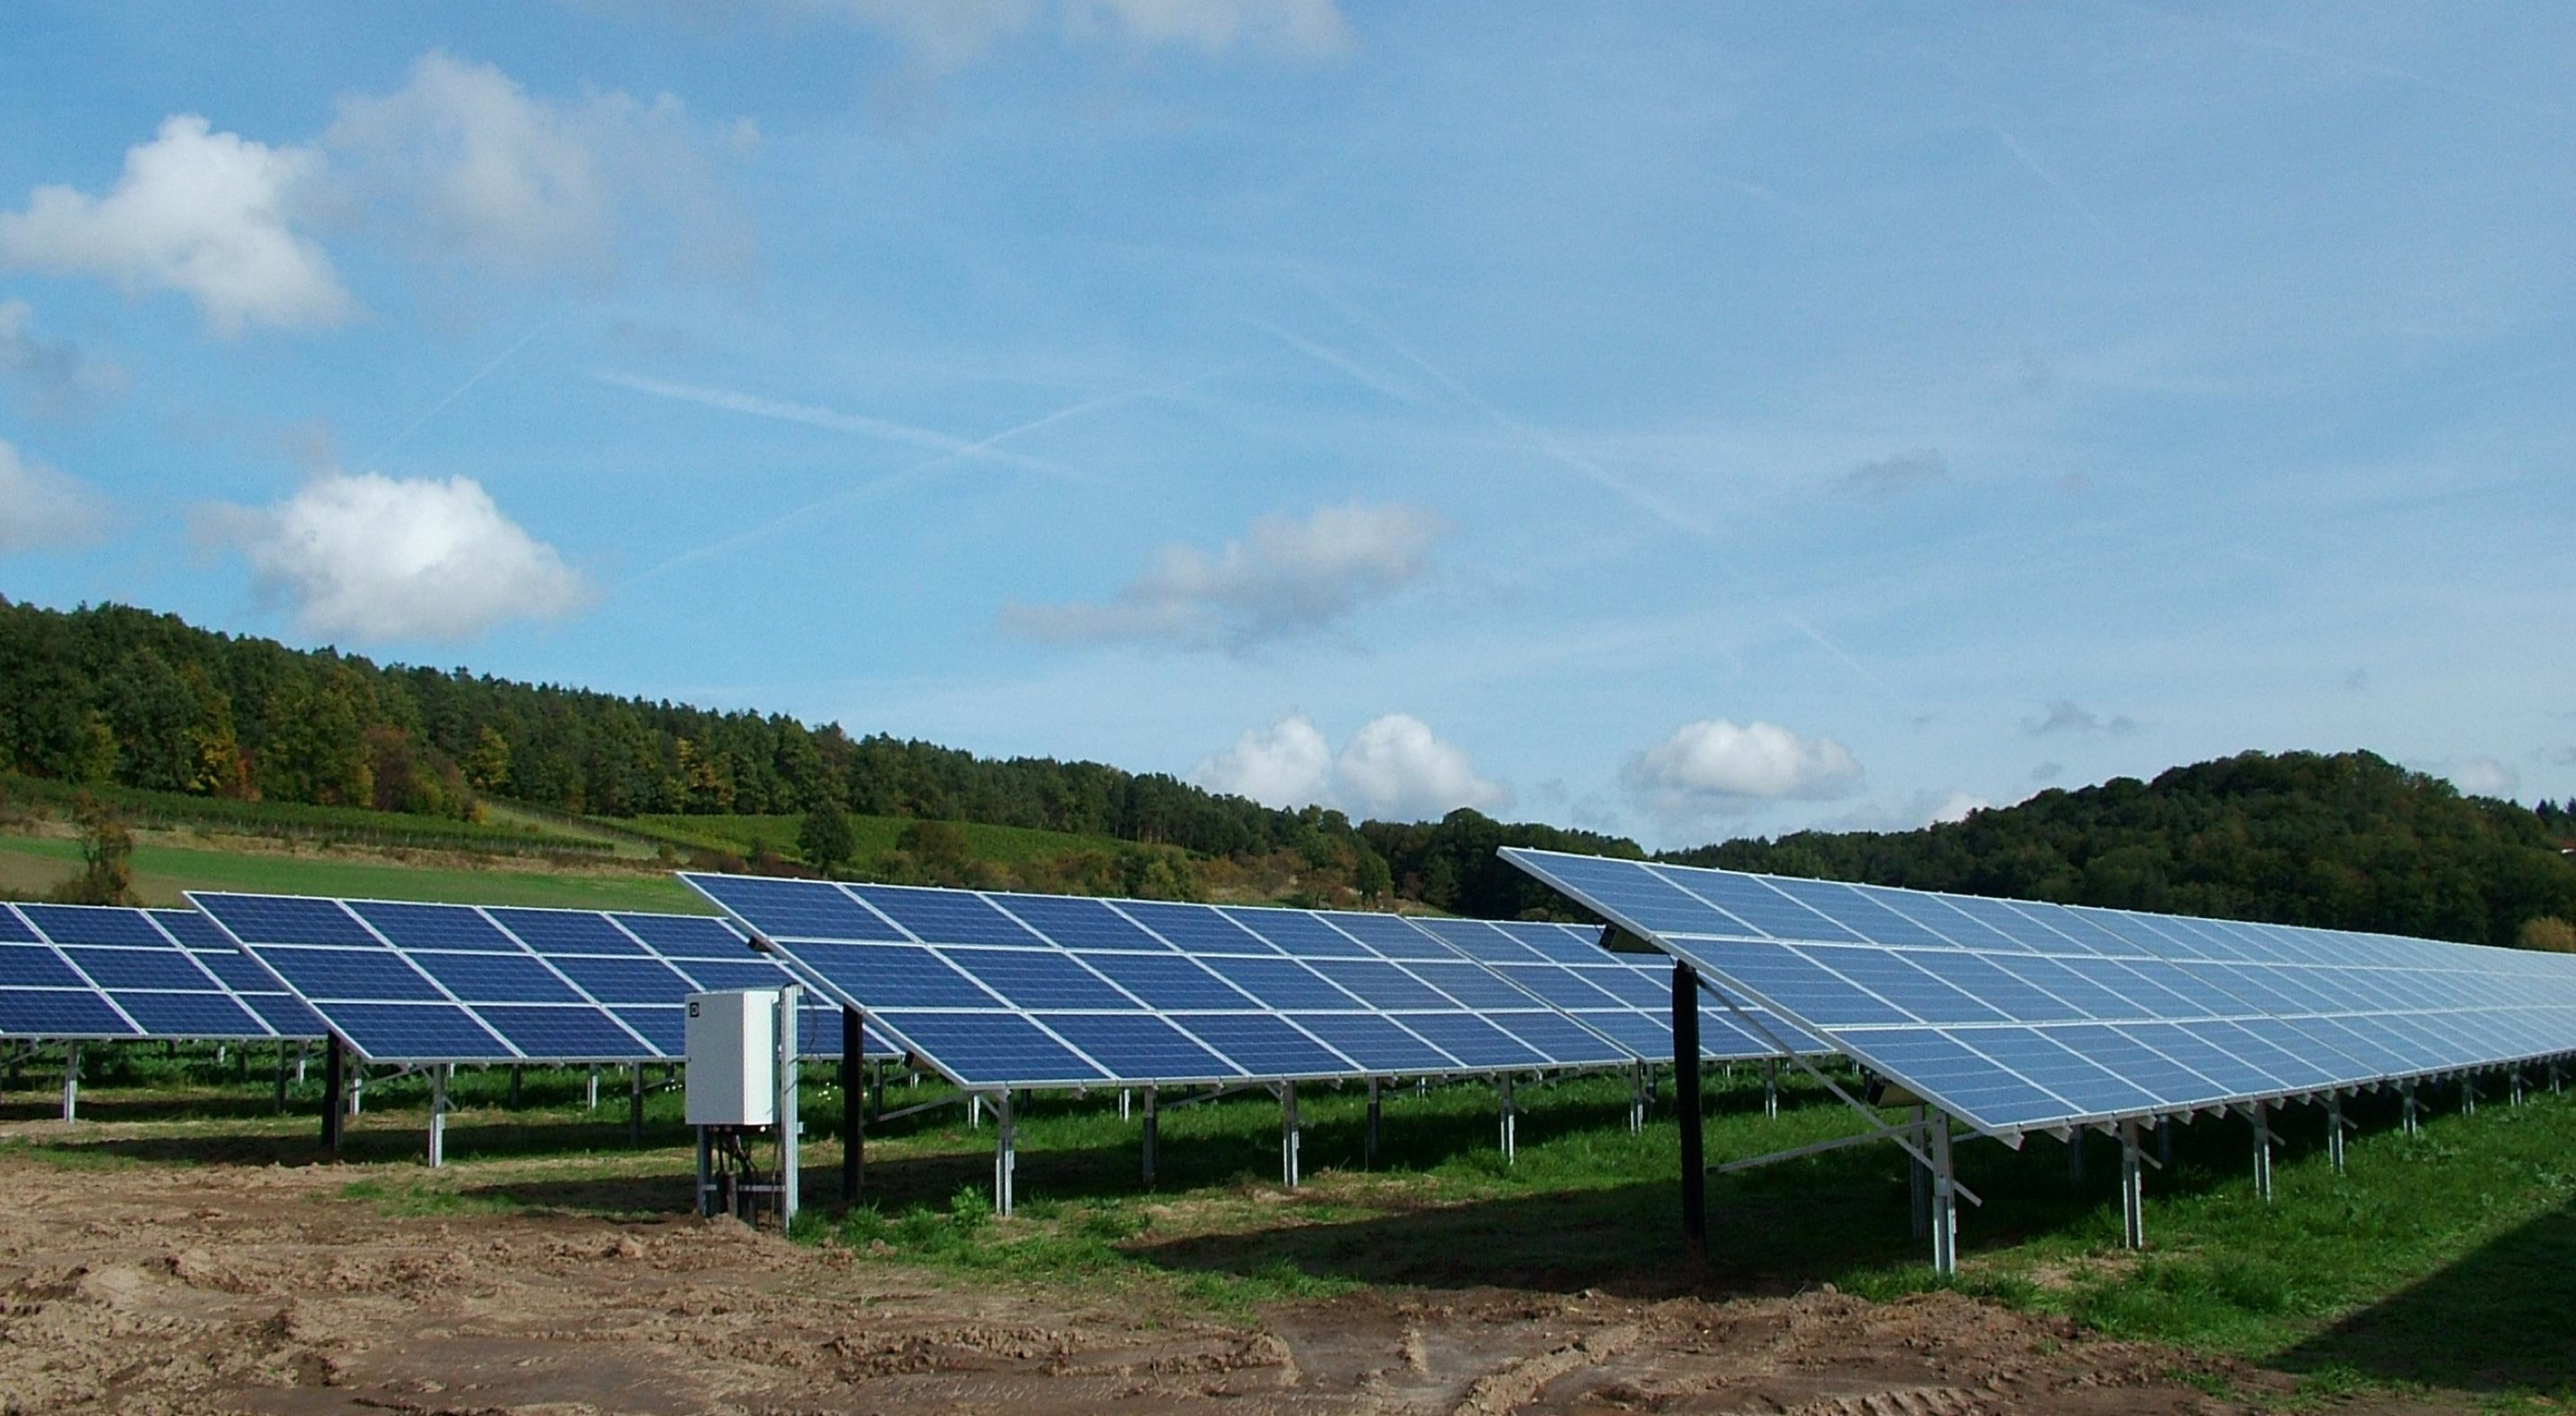 UCCB consulted and lead negotiations between an international solar company, planners, suppliers, investors and local German authorities for the project development  and completion of  a 1.6 MW Solar Energy Co-operative for the community of Oberhaid